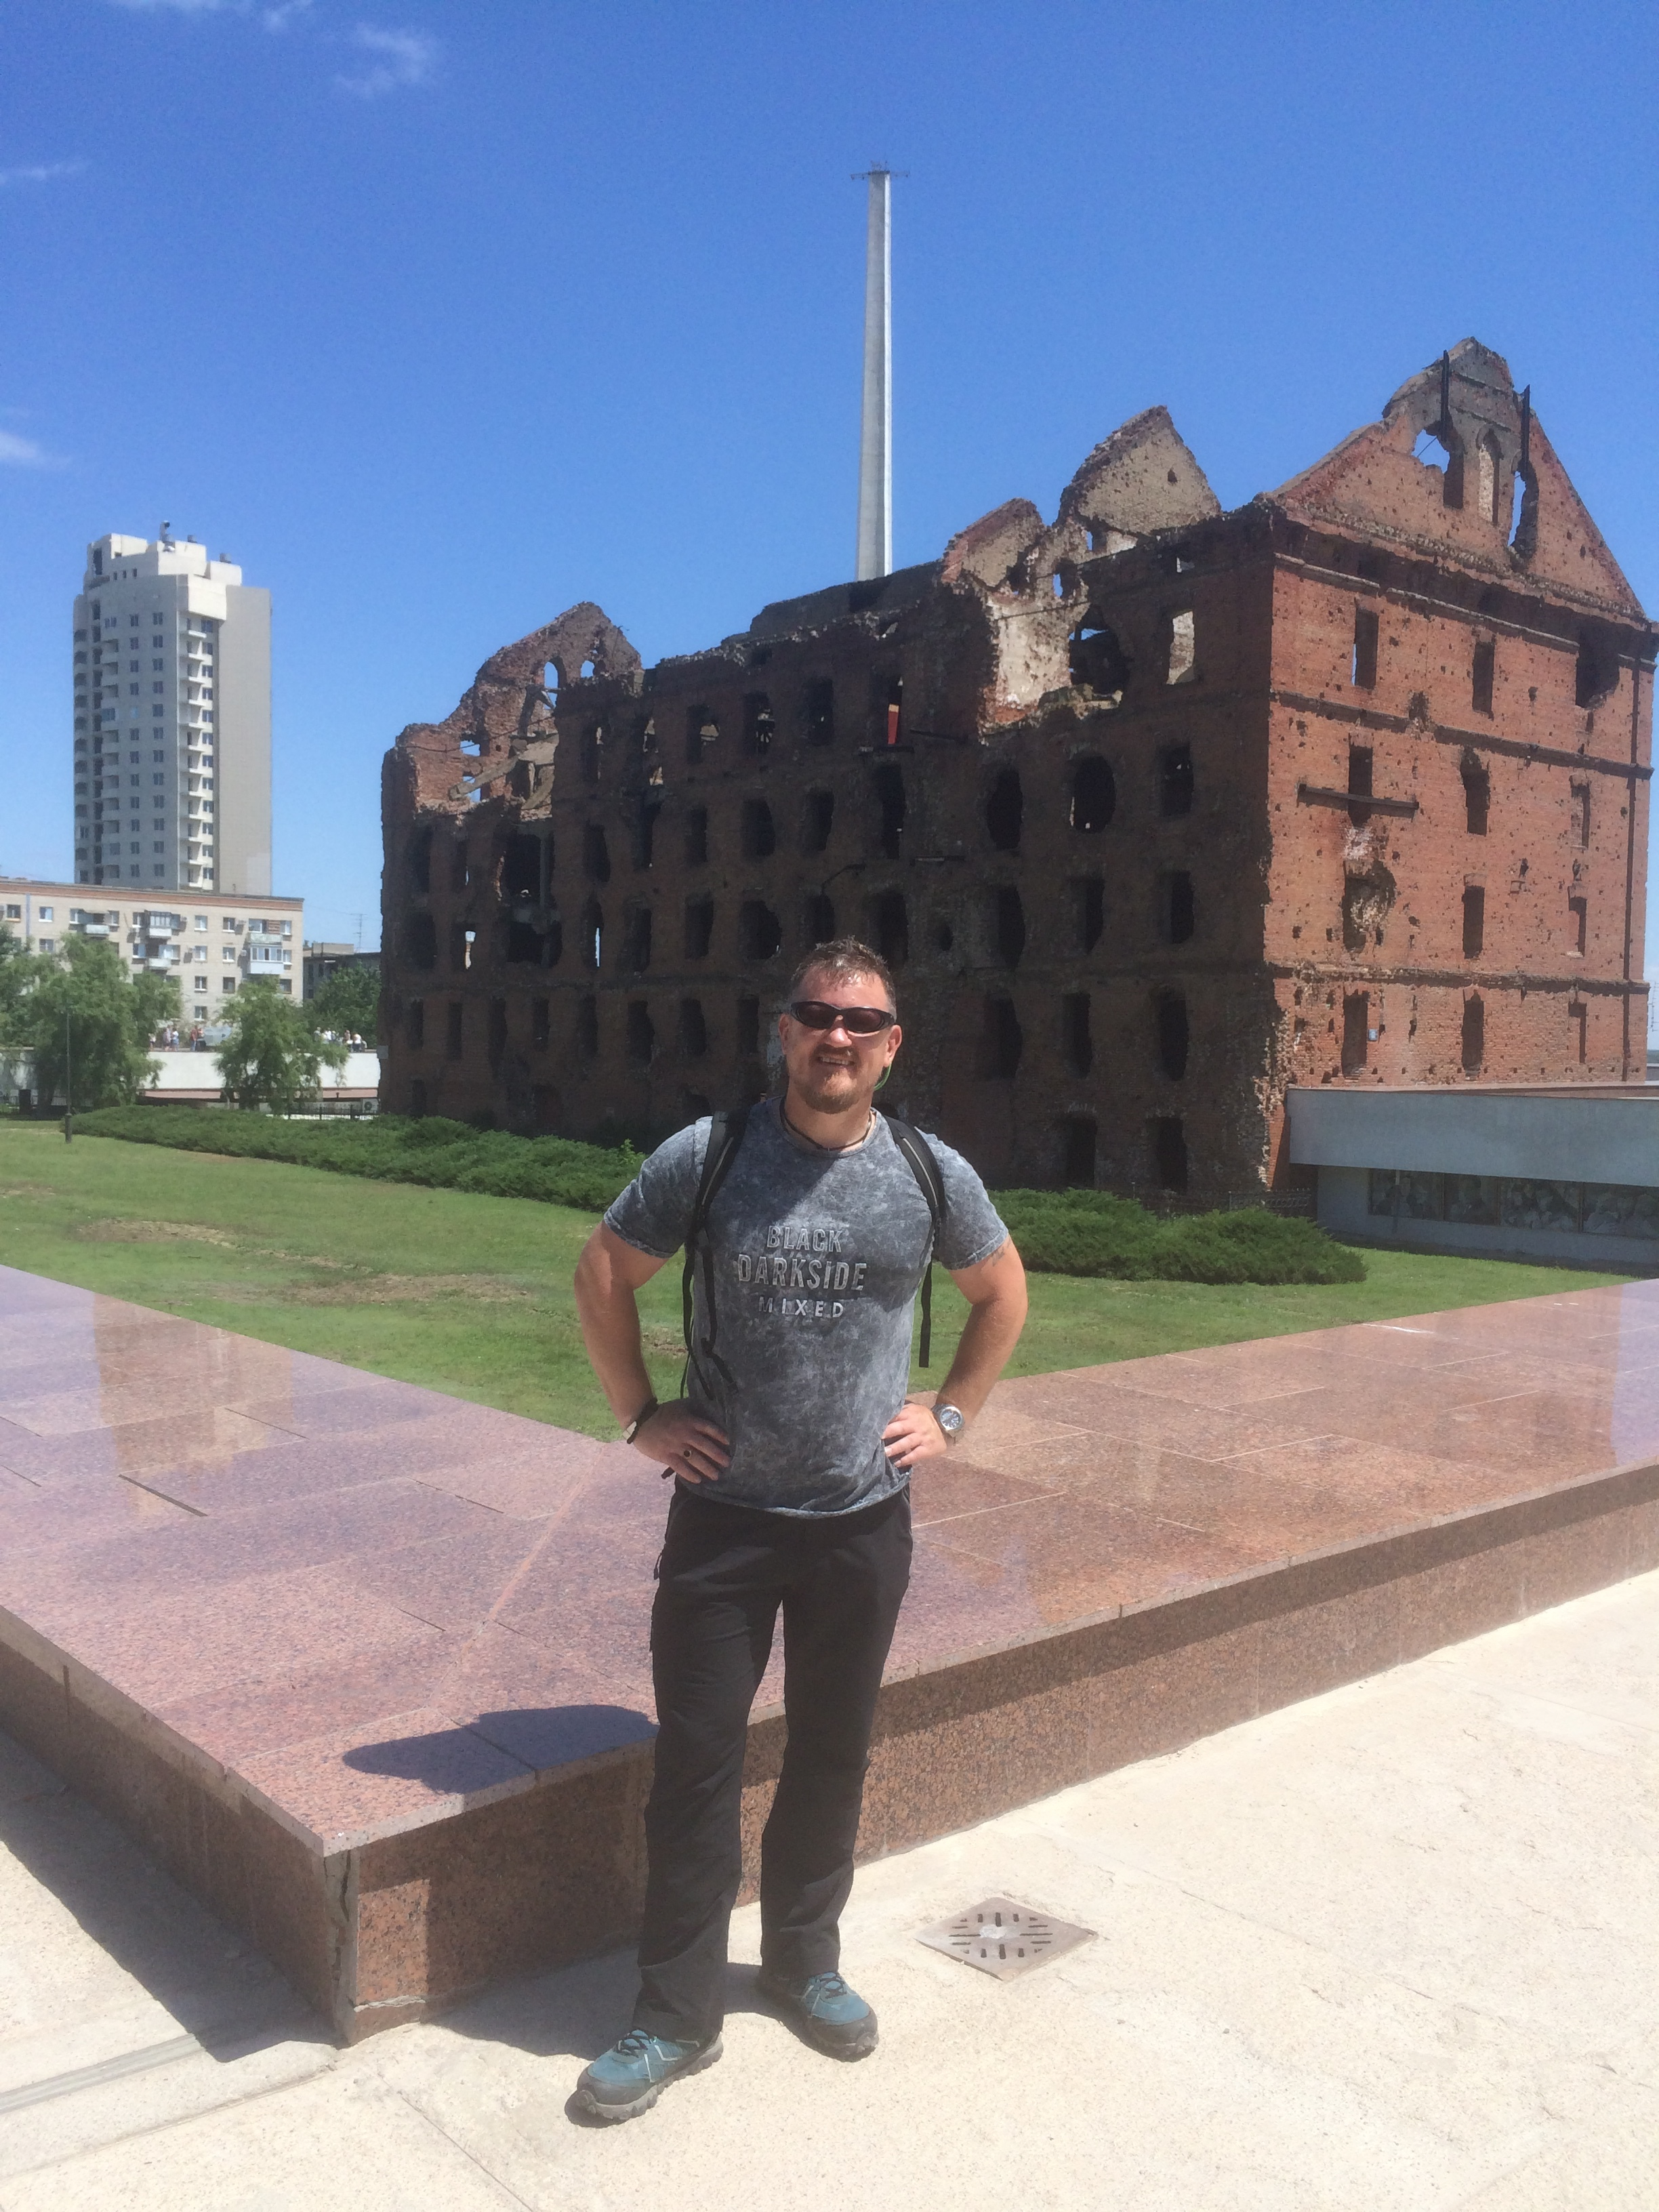 Buildings from the 'Battle of Stalingrad'